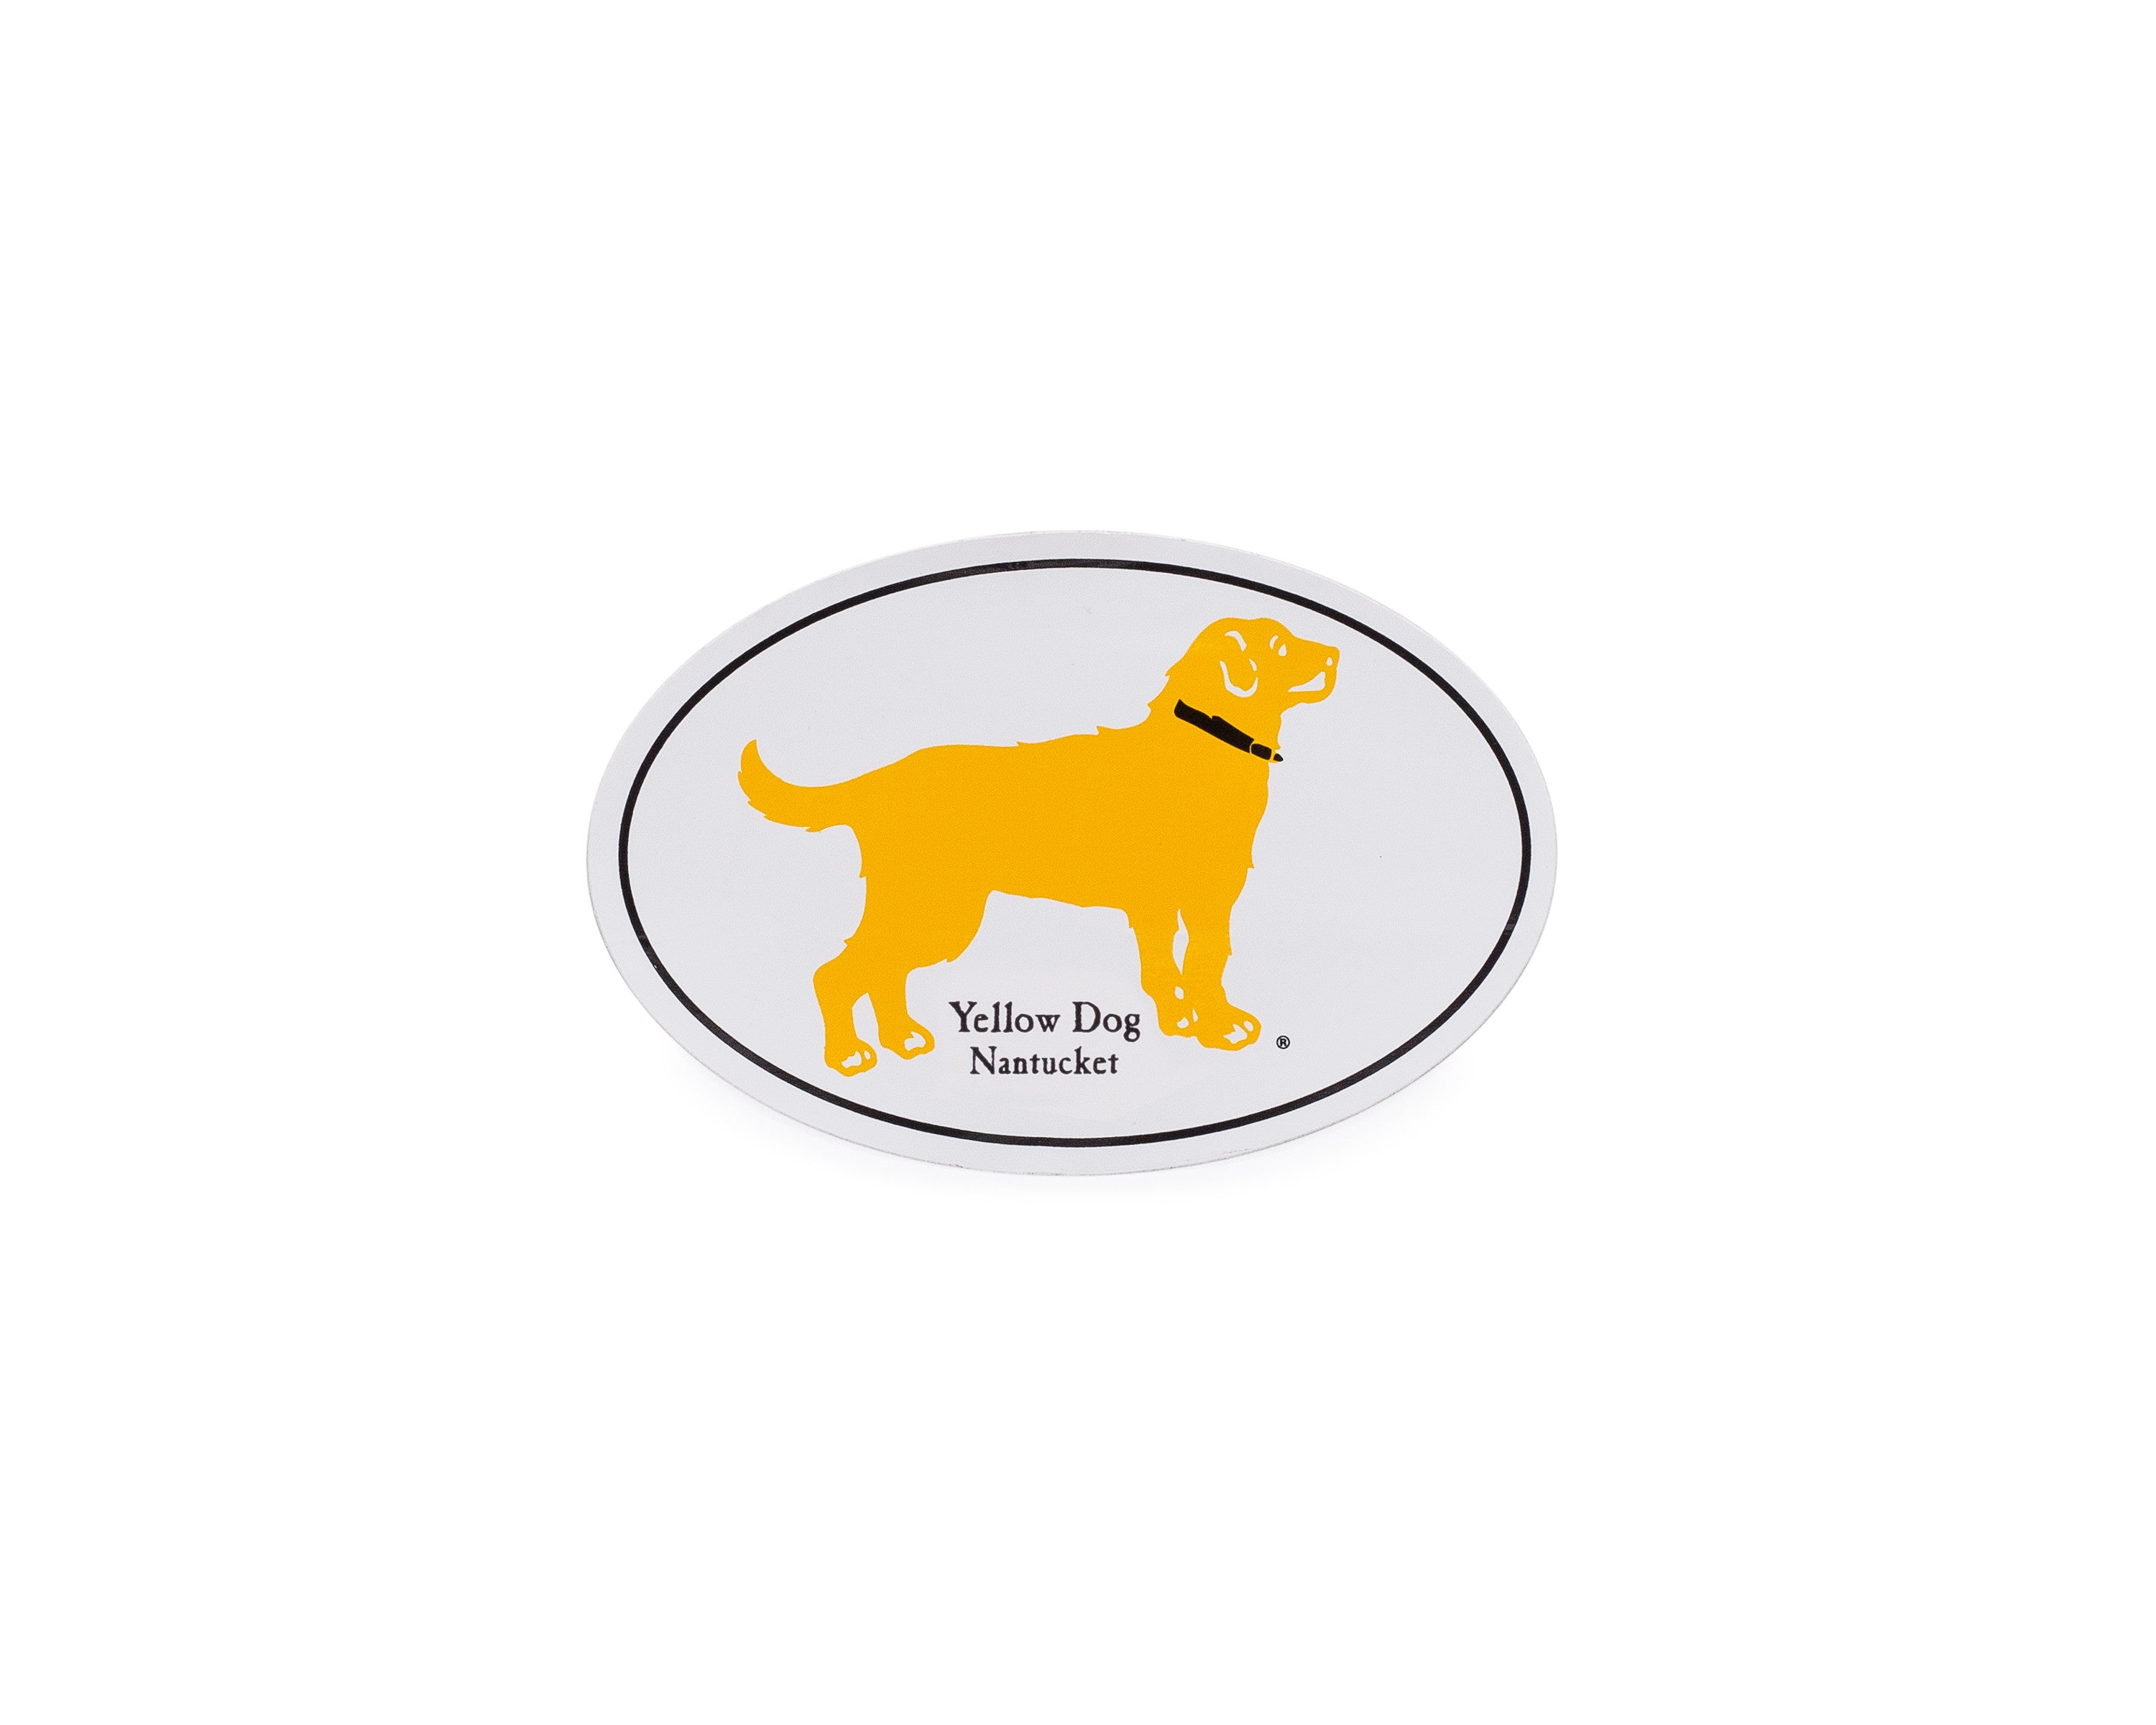 FREE Yellow Dog Nantucket Stic...